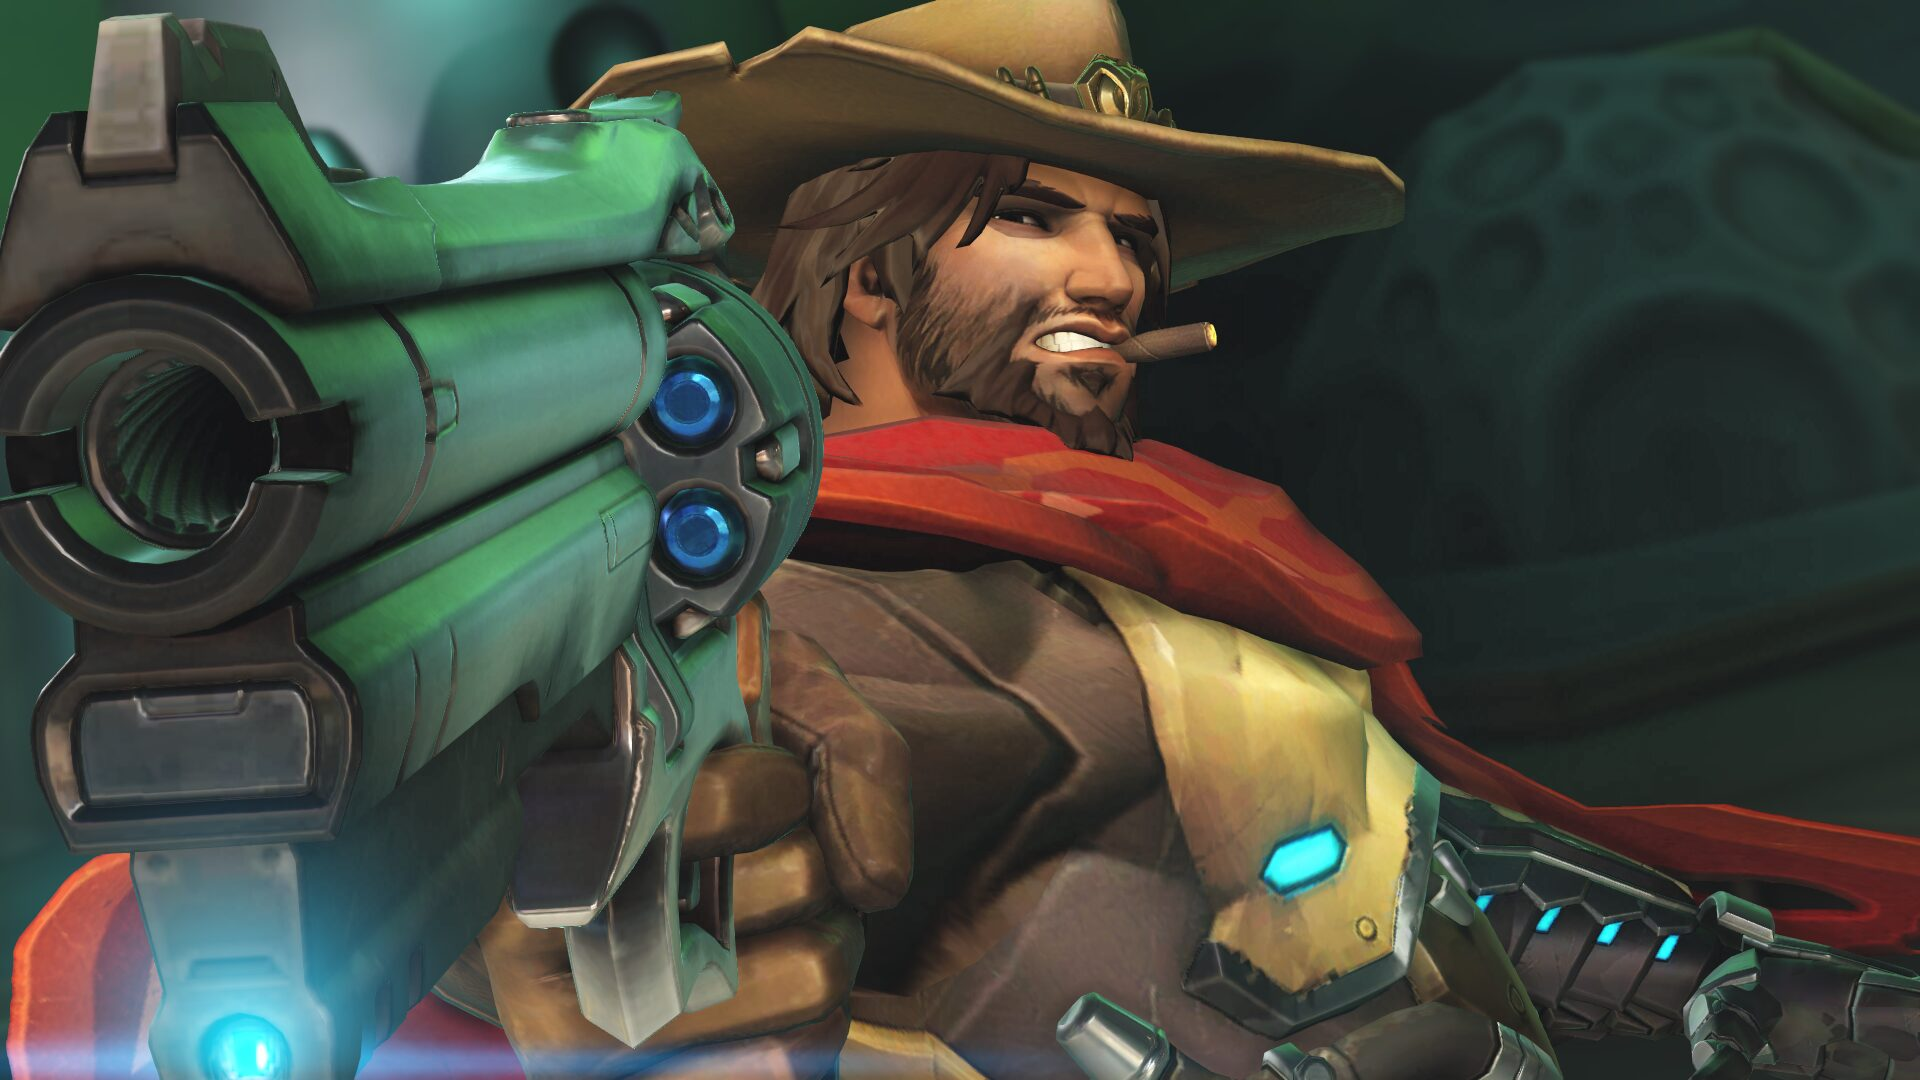 Overwatch's McCree will undergo a name change following sexual harassment lawsuit